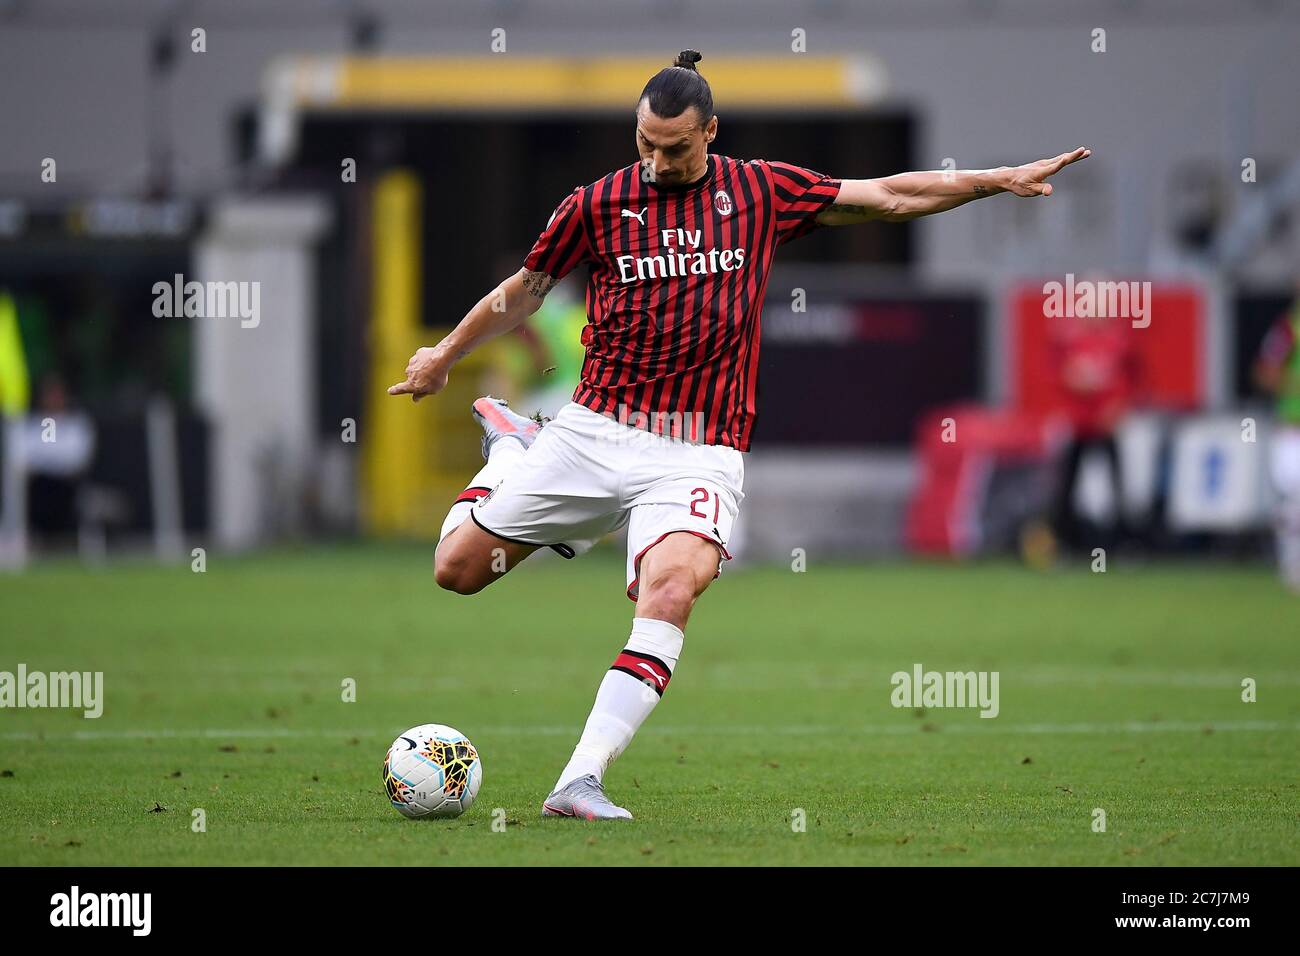 Milan Italy 15 July 2020 Zlatan Ibrahimovic Of Ac Milan In Action During The Serie A